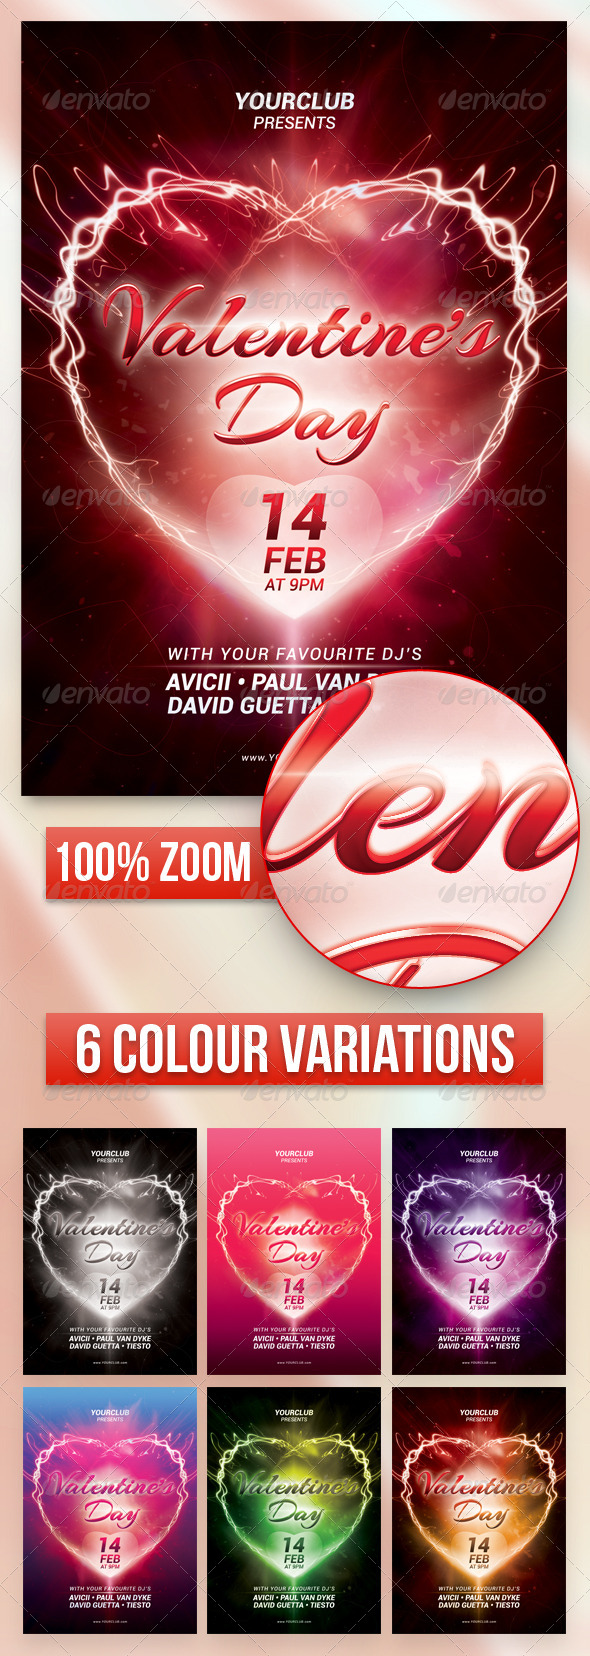 A5 Valentine's Day Party Flyer / Poster 7 in 1 - Events Flyers